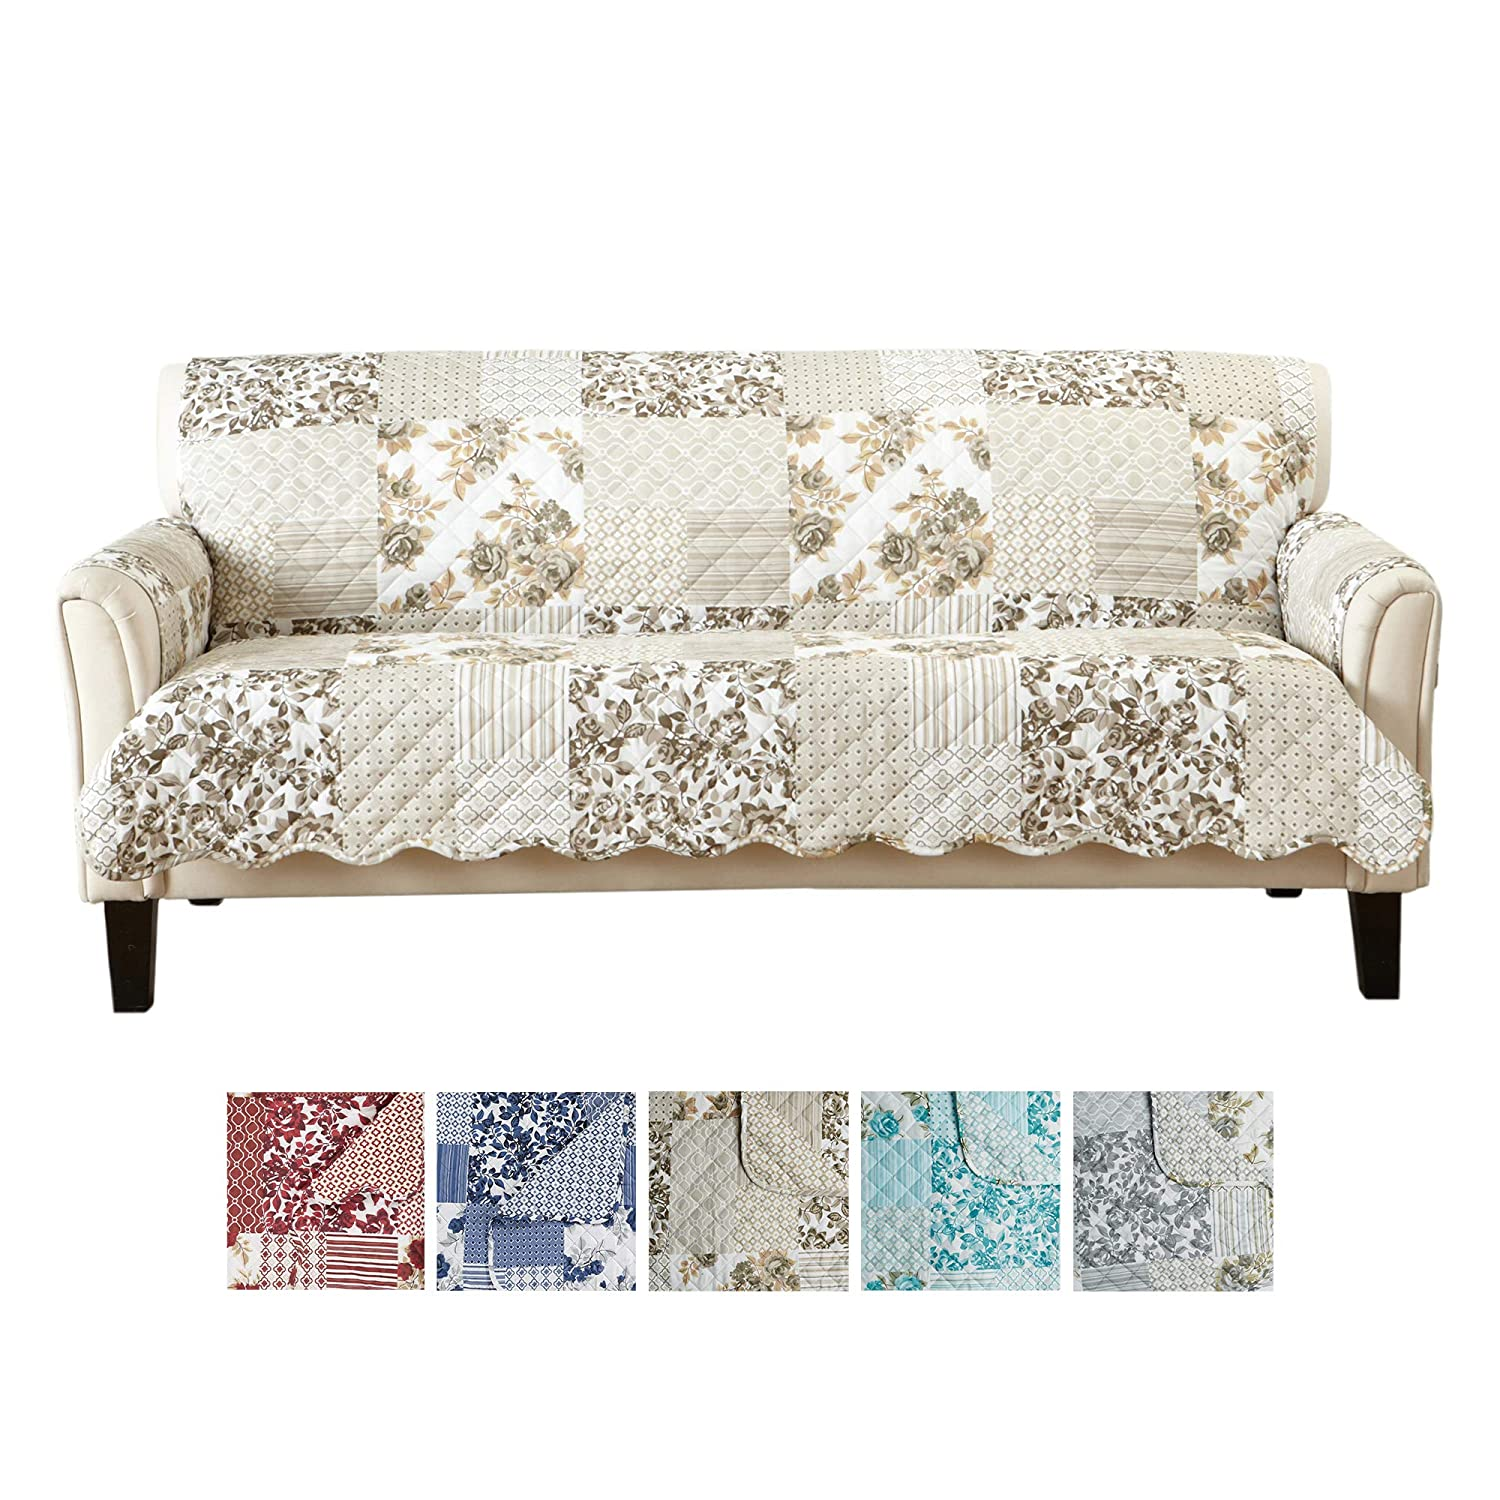 Superb Great Bay Home Patchwork Scalloped Printed Furniture Protector Stain Resistant Couch Cover 74 Sofa Taupe Caraccident5 Cool Chair Designs And Ideas Caraccident5Info